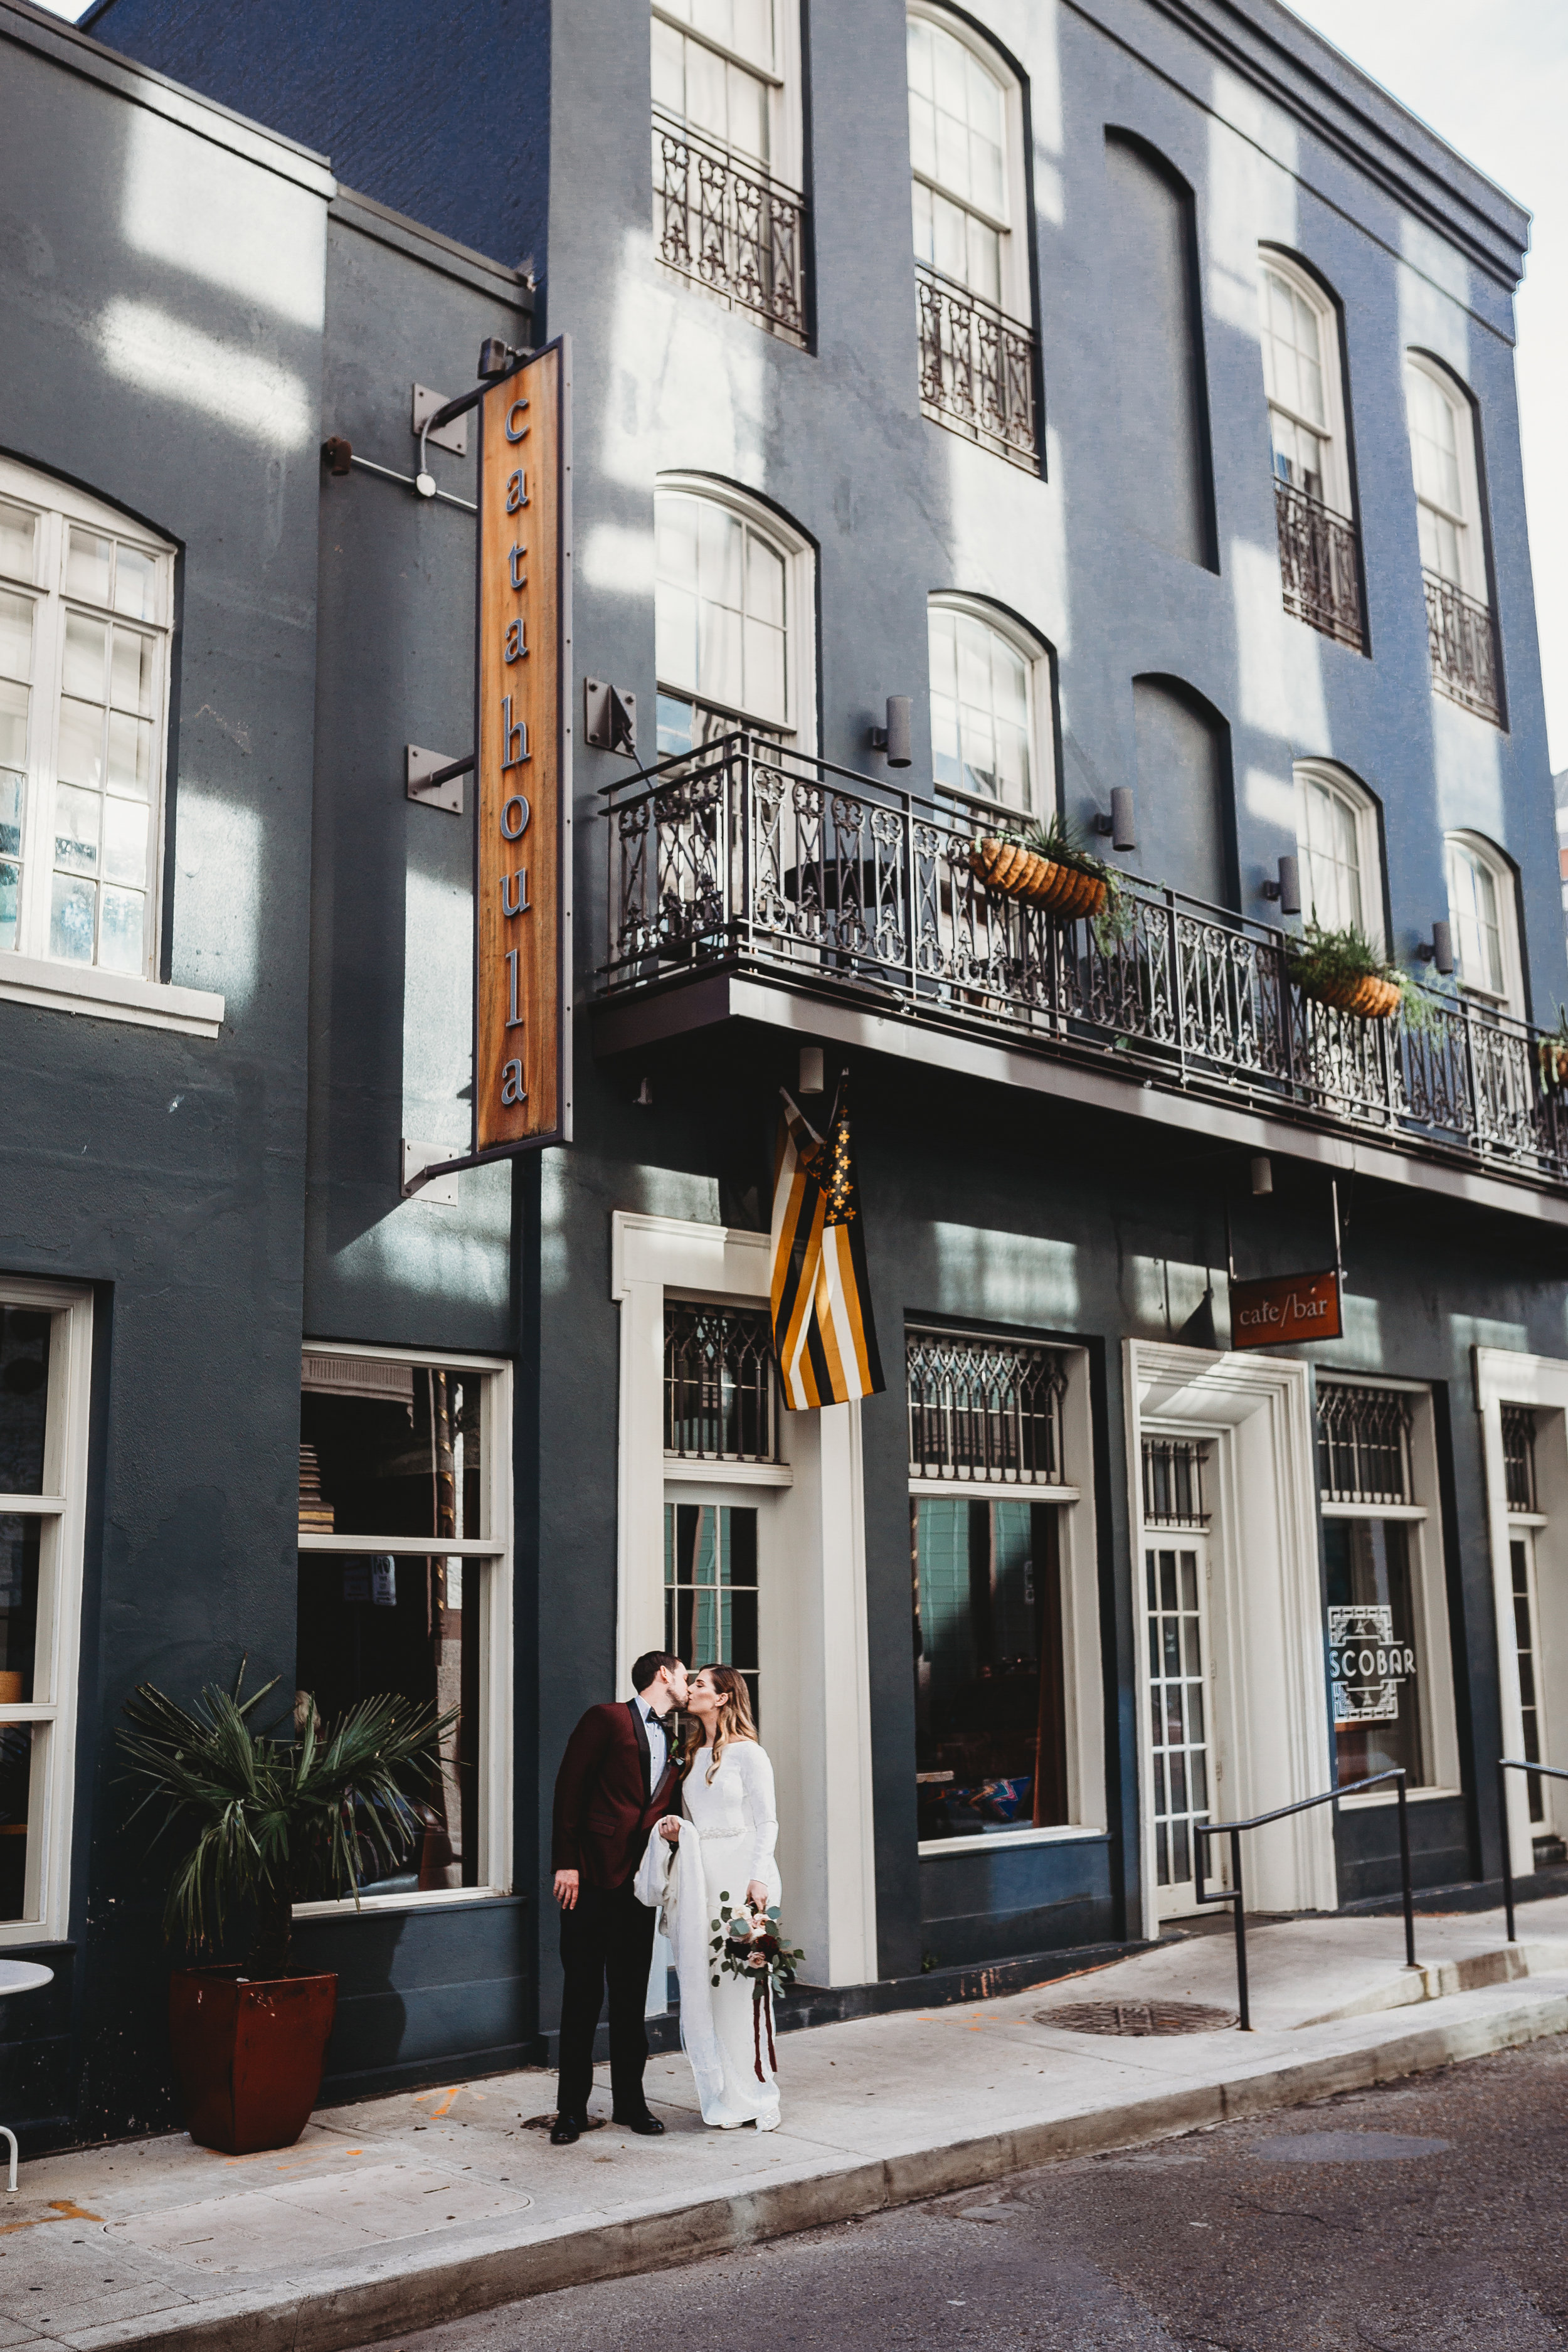 Wedding at Catahoula Hotel New Orleans Wedding Photographer47.jpg